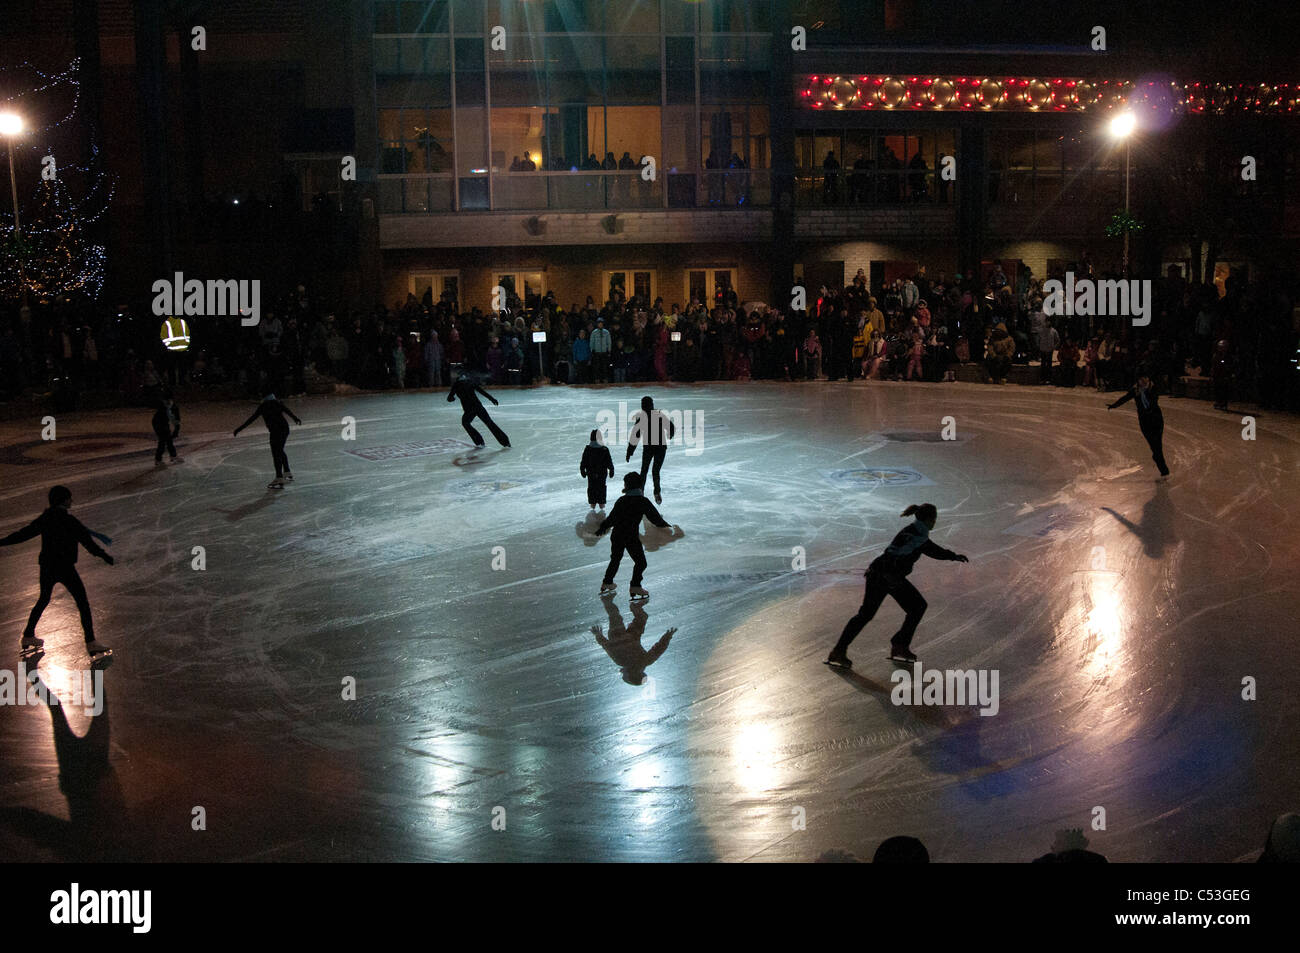 Ice skaters perform for the public on New Year's Eve in Town Square Park, downtown Anchorage, Southcentral Alaska, - Stock Image